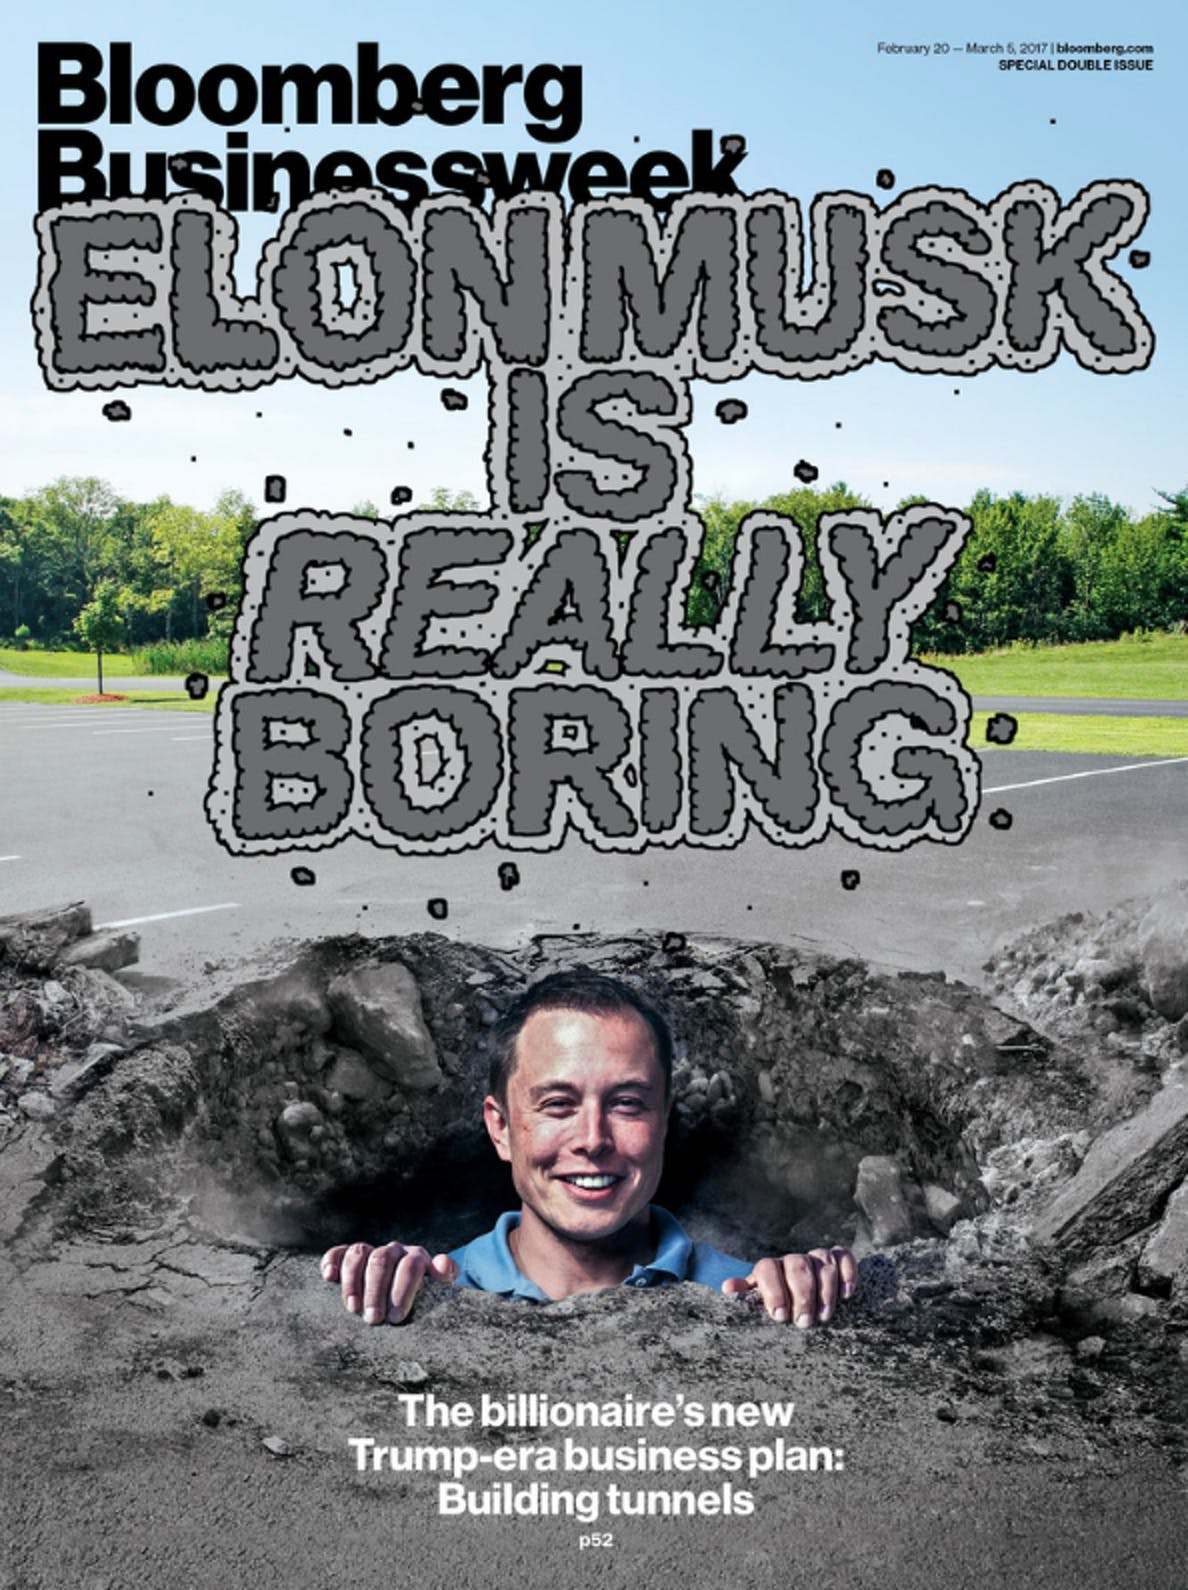 Bloomberg Businessweek had Elon Musk Tesla and SpaceX CEO on its cover to discuss the entrepreneur's plan to dig tunnels called the Boring Company.